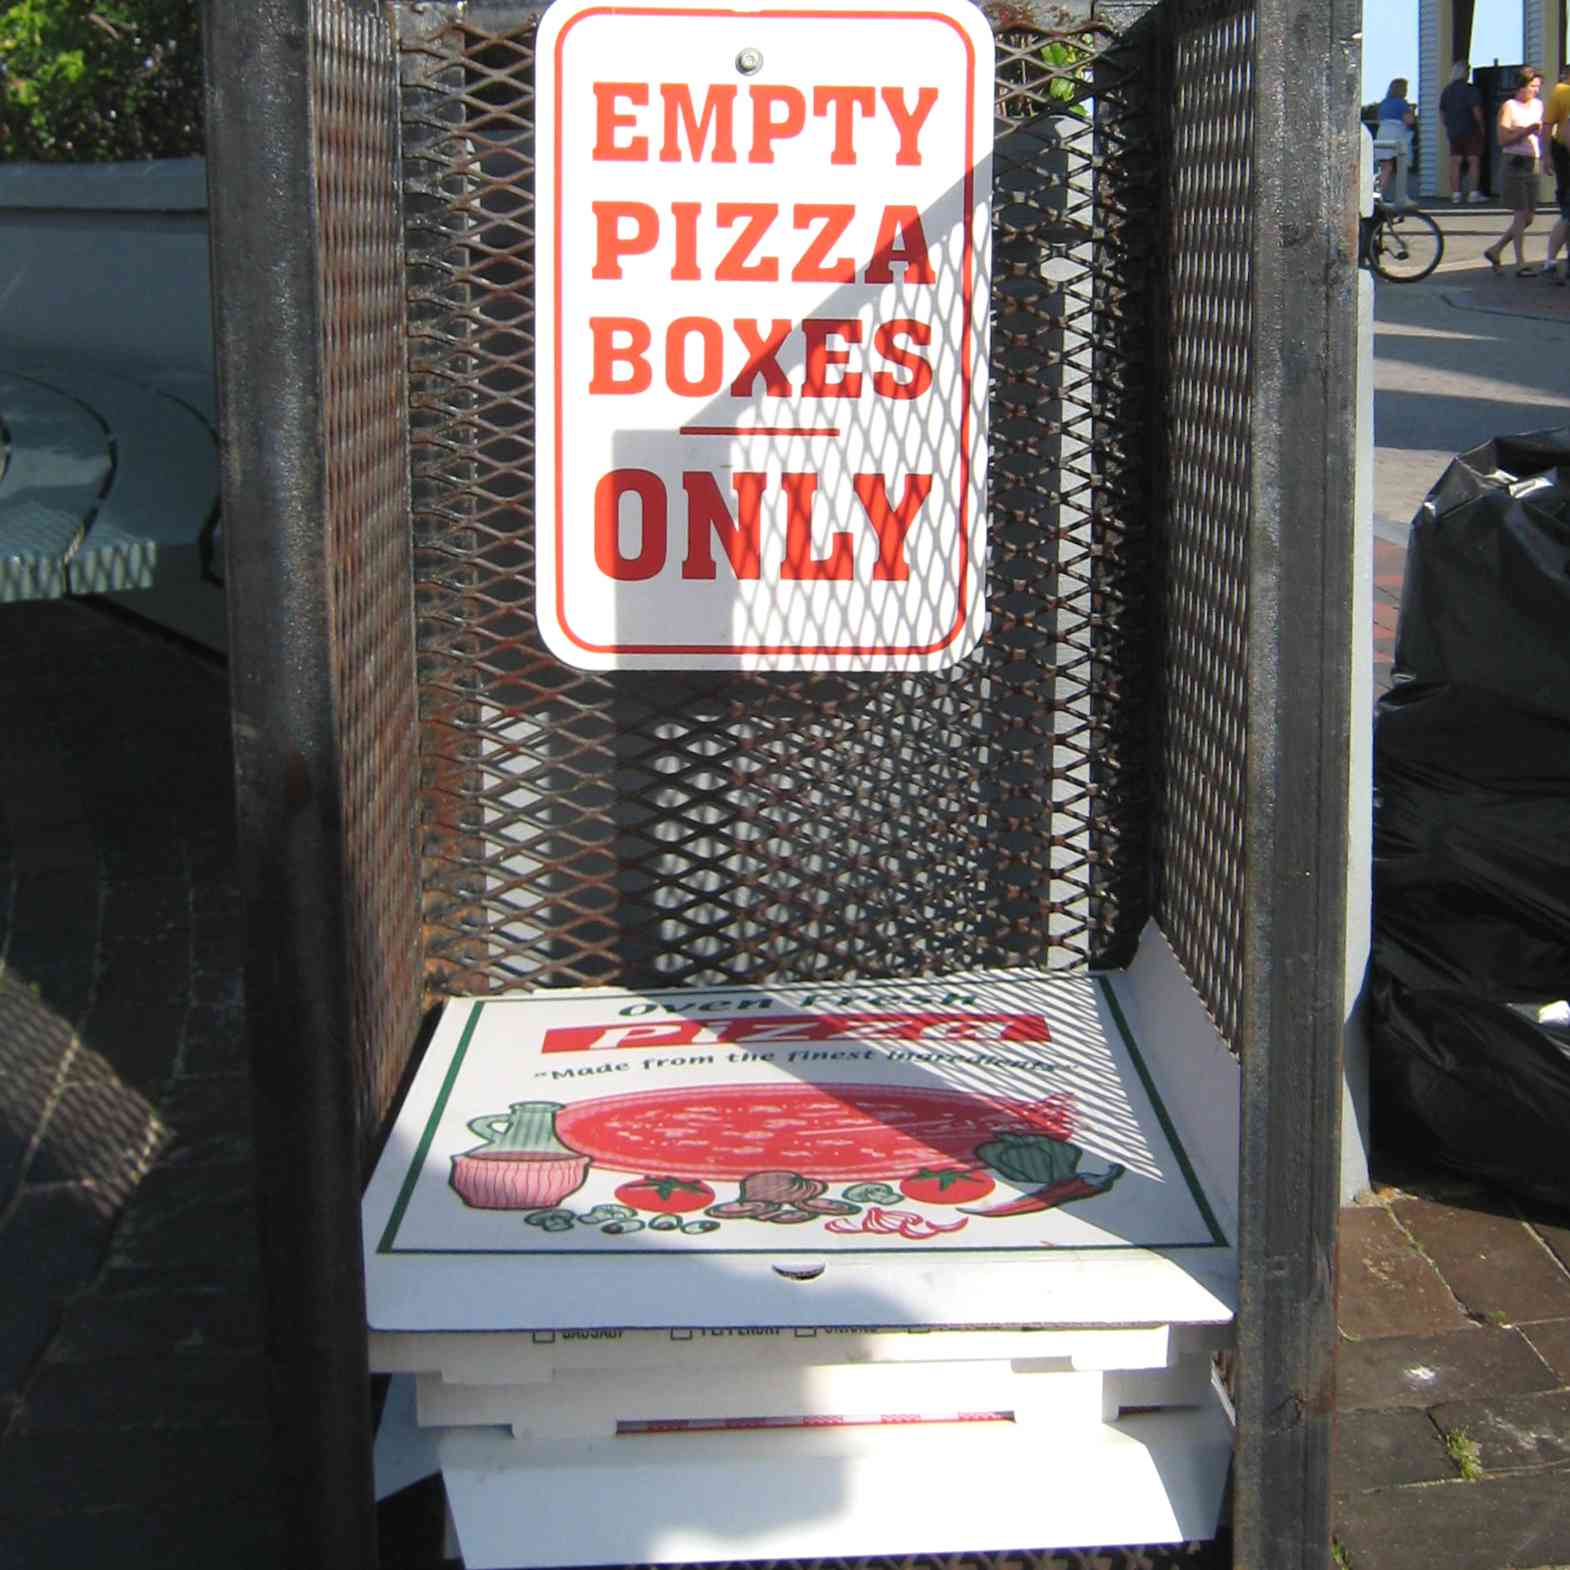 A metal crate for pizza box returns with sign saying empty pizza boxes only